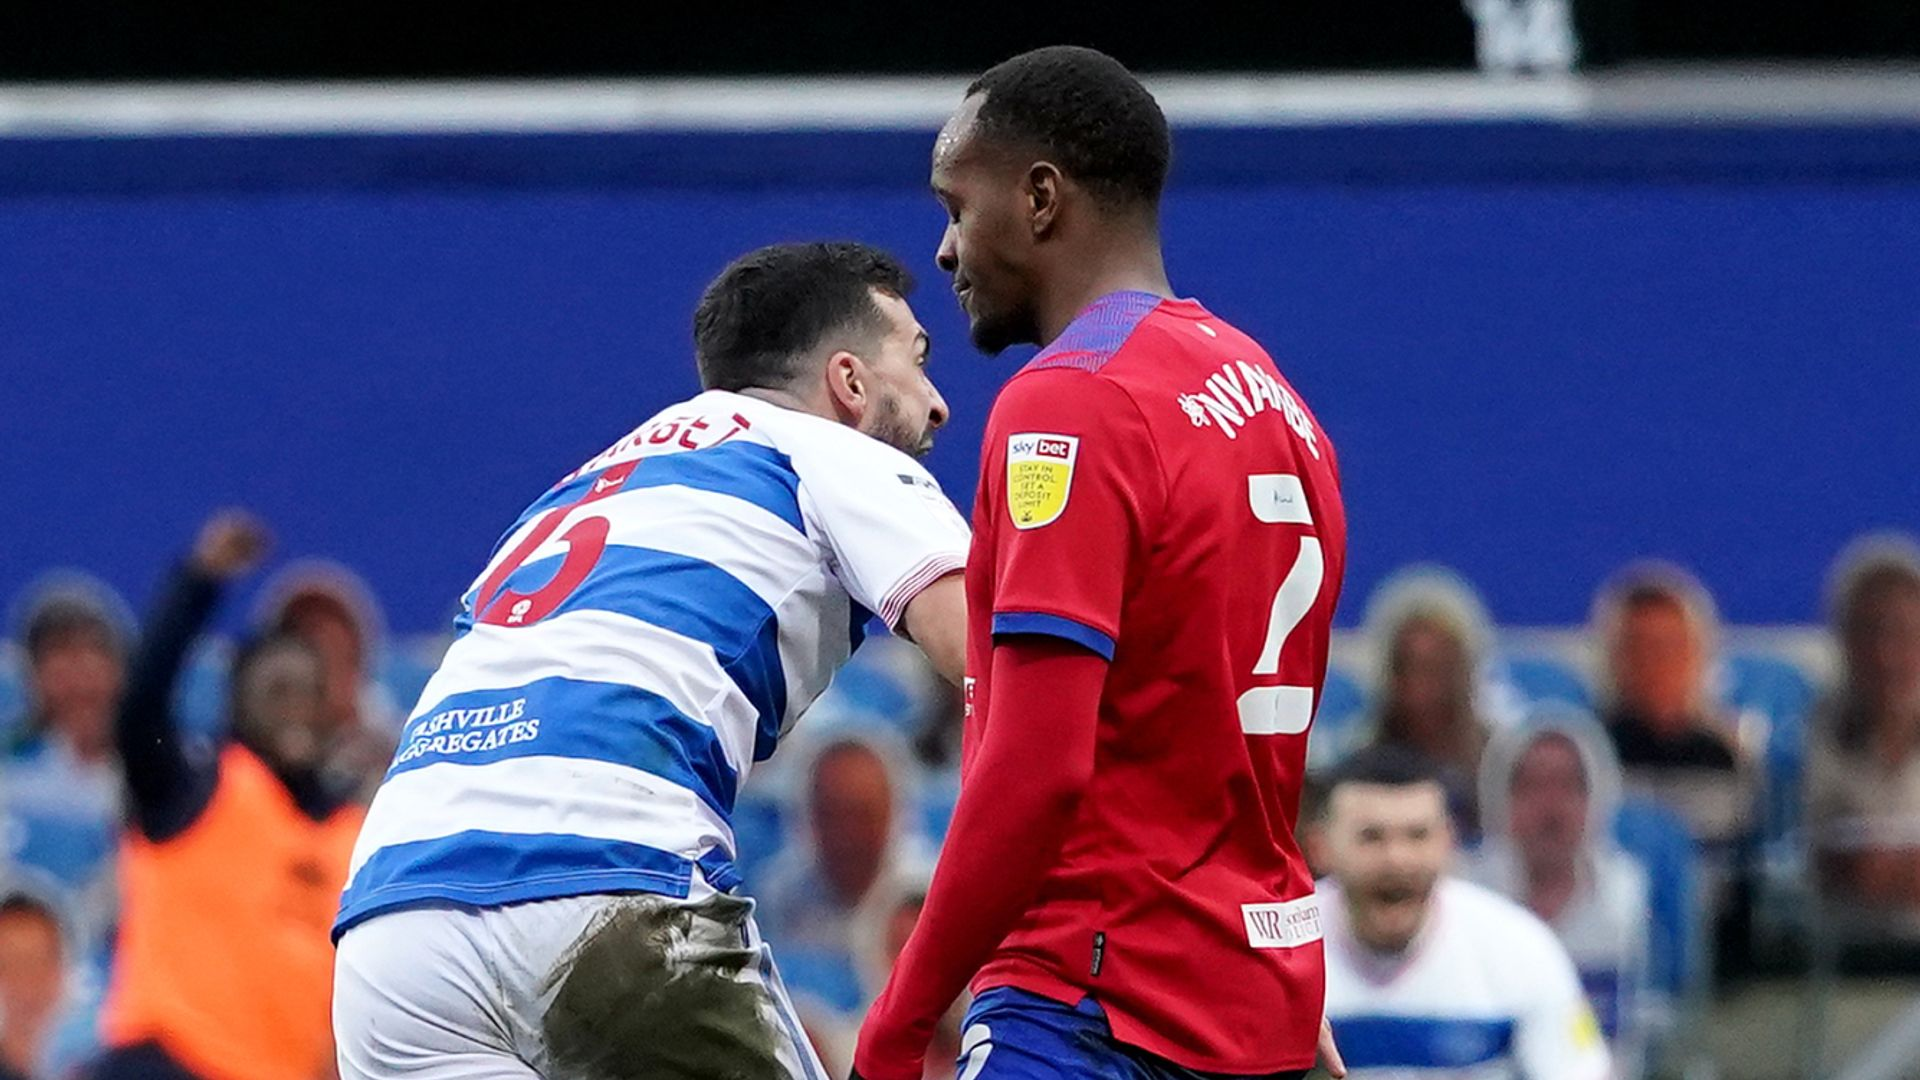 Barbet steers QPR past Blackburn